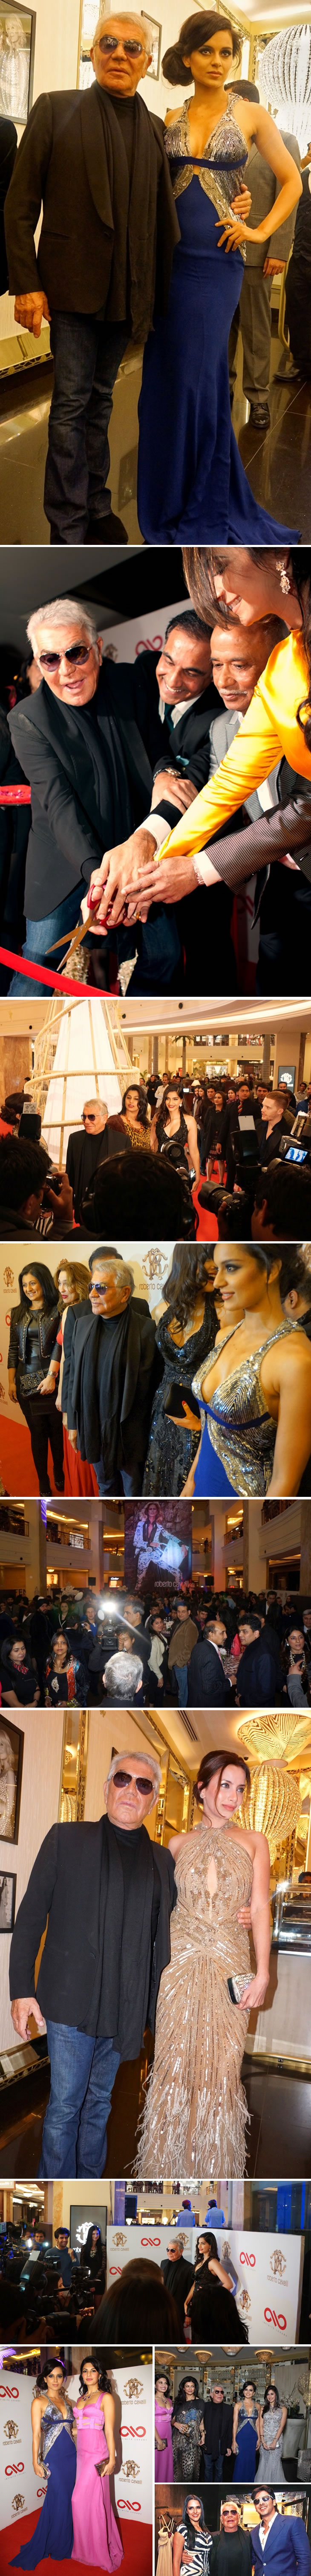 Roberto Cavalli - Grand Opening New Delhi Boutique